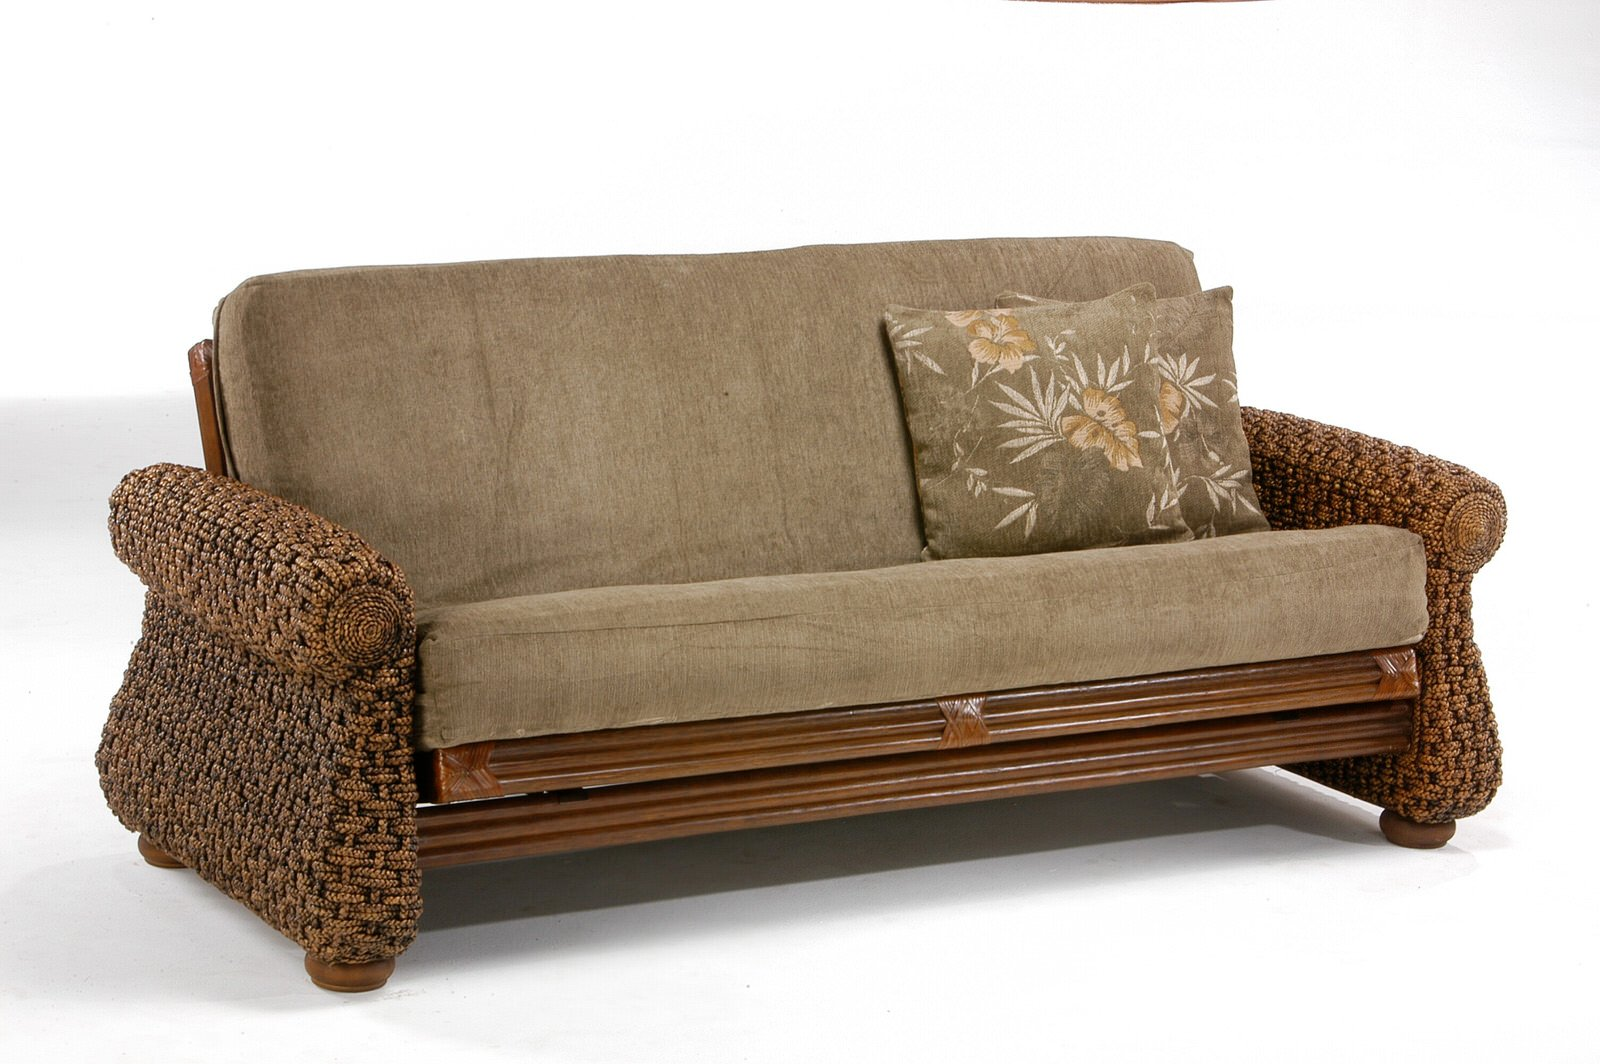 Wicker futon for Wicker futon sofa bed